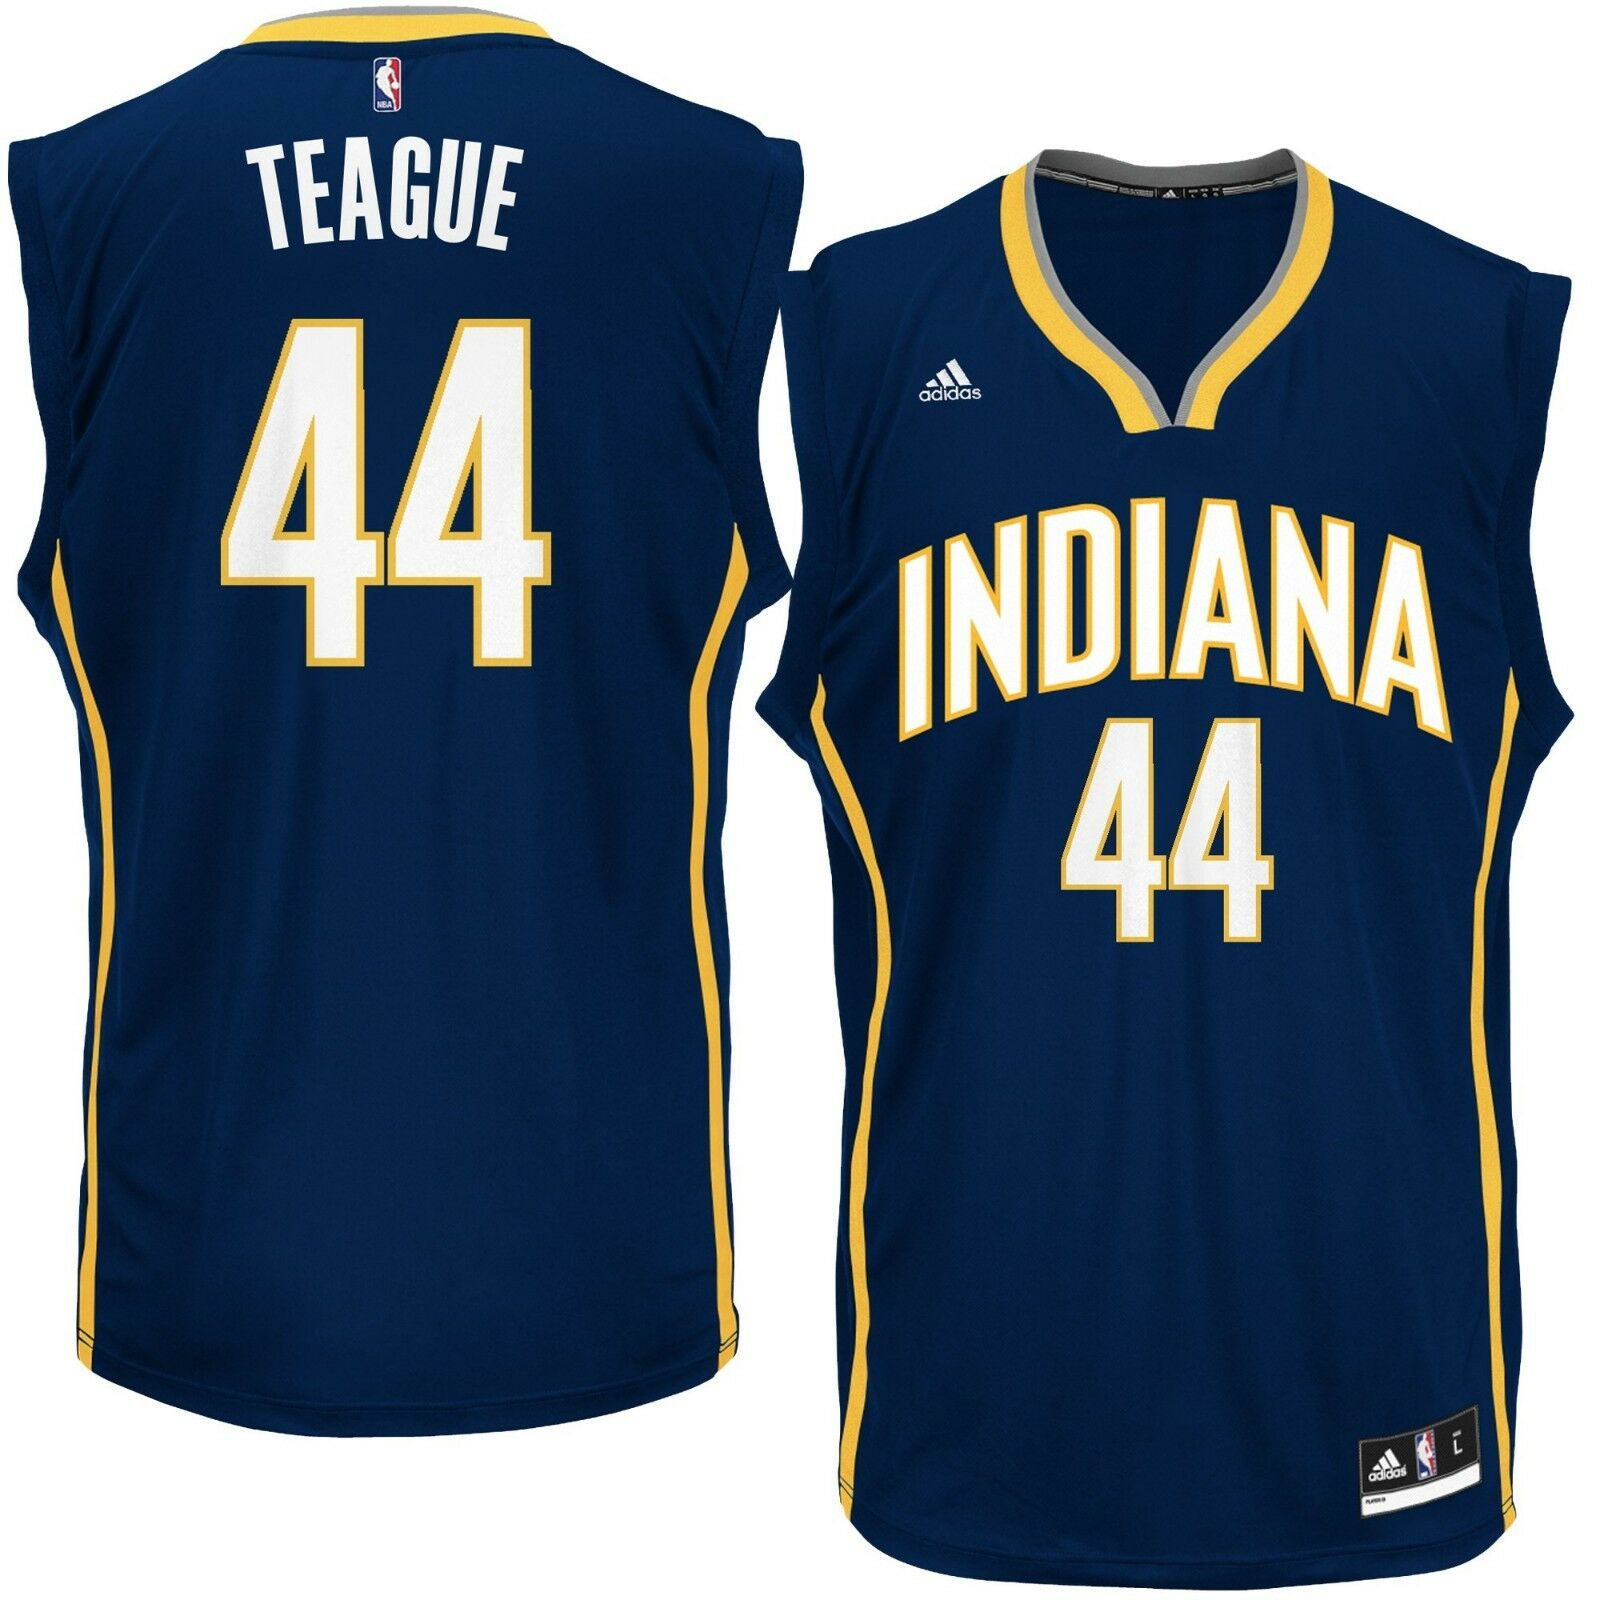 % Genuine Jeff Teague Indiana Pacers adidas Replica Jersey - Navy